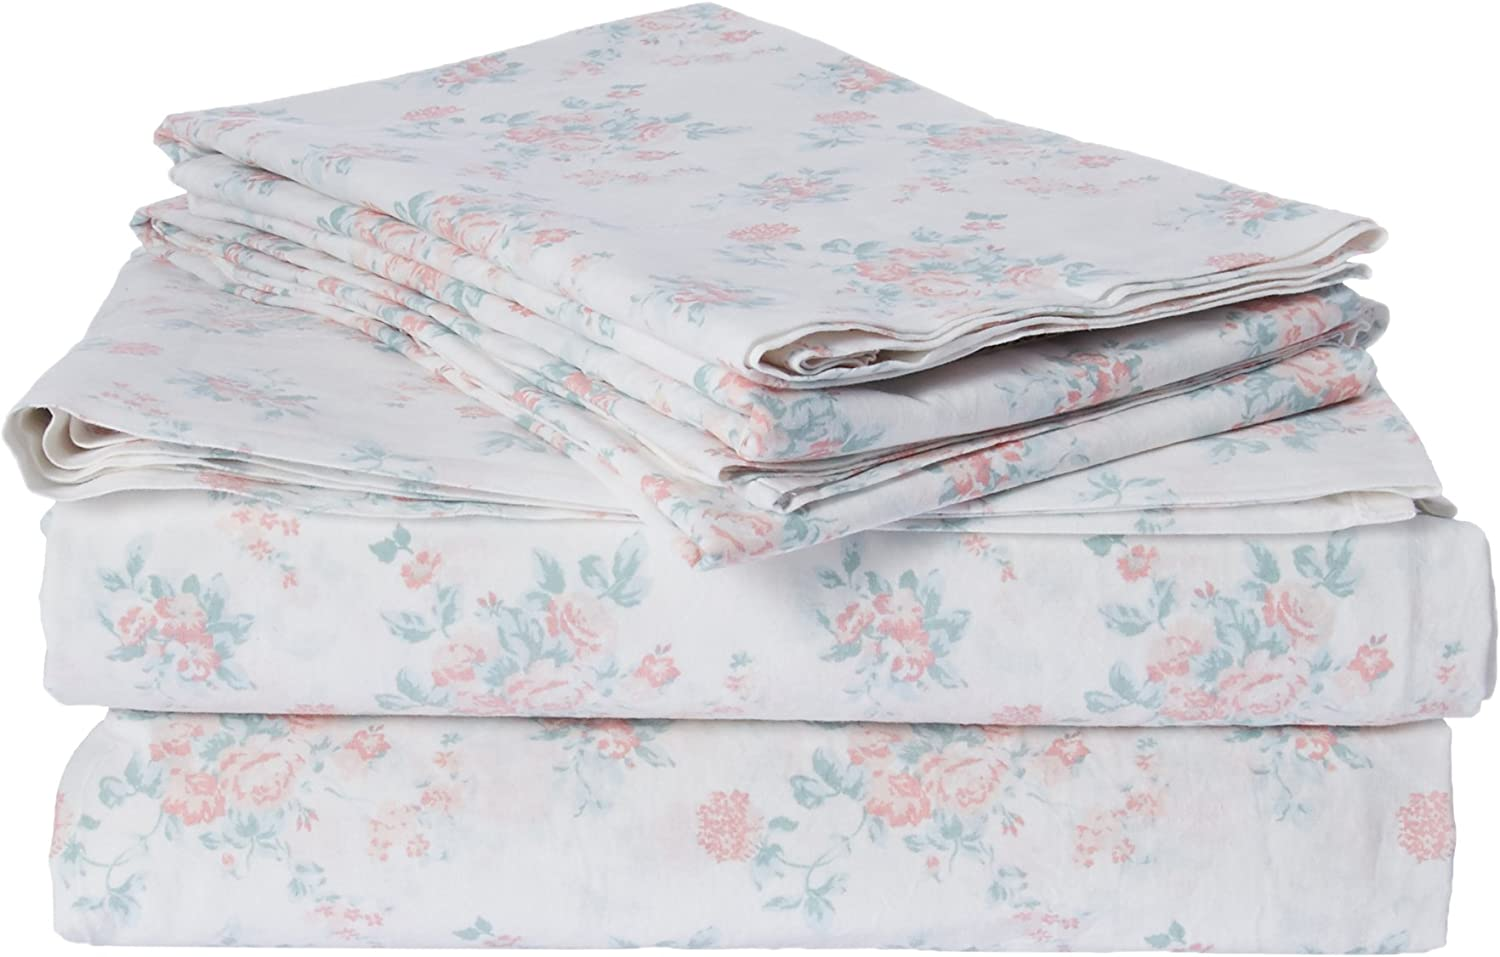 Madison Park Floral Queen Bed Sheets, Cottage Country 100% Cotton Bed Sheet, Pink Bed Sheet Set 6-Piece Include Flat Sheet, Fitted Sheet & 4 Pillowcases